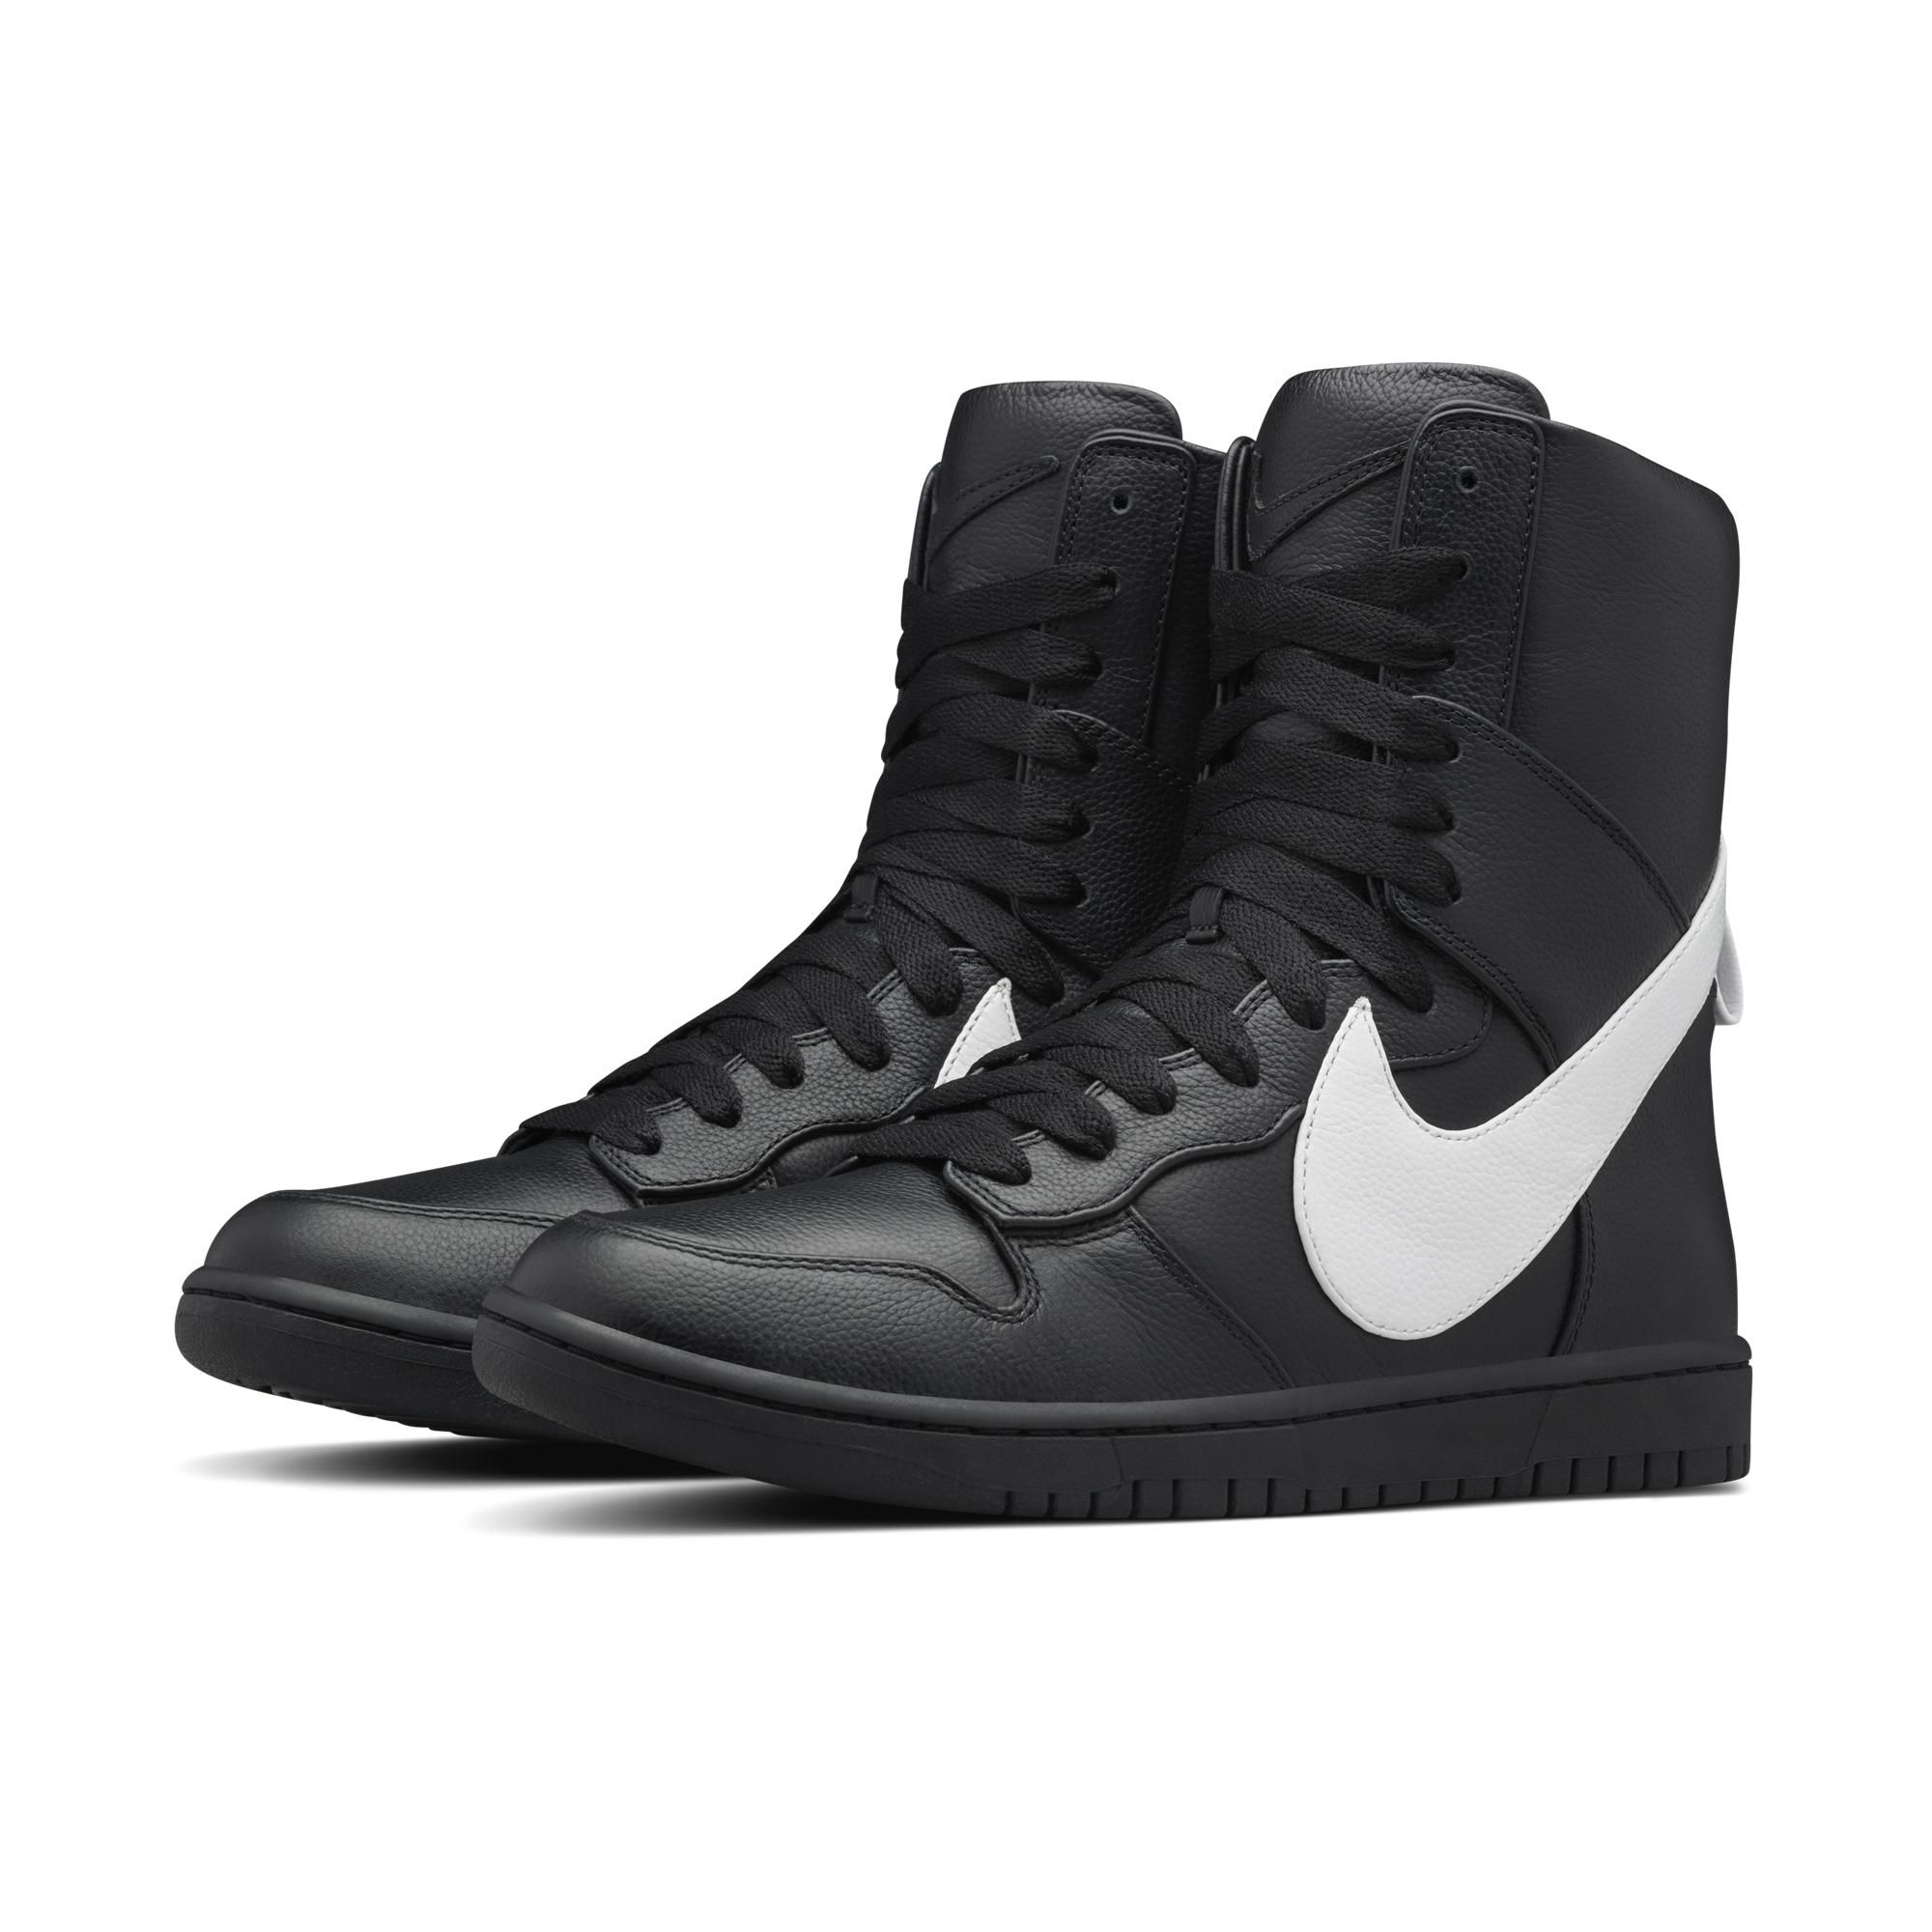 d8b44e59a468a Tênis NikeLab Dunk Lux High X Riccardo Tisci Masculino